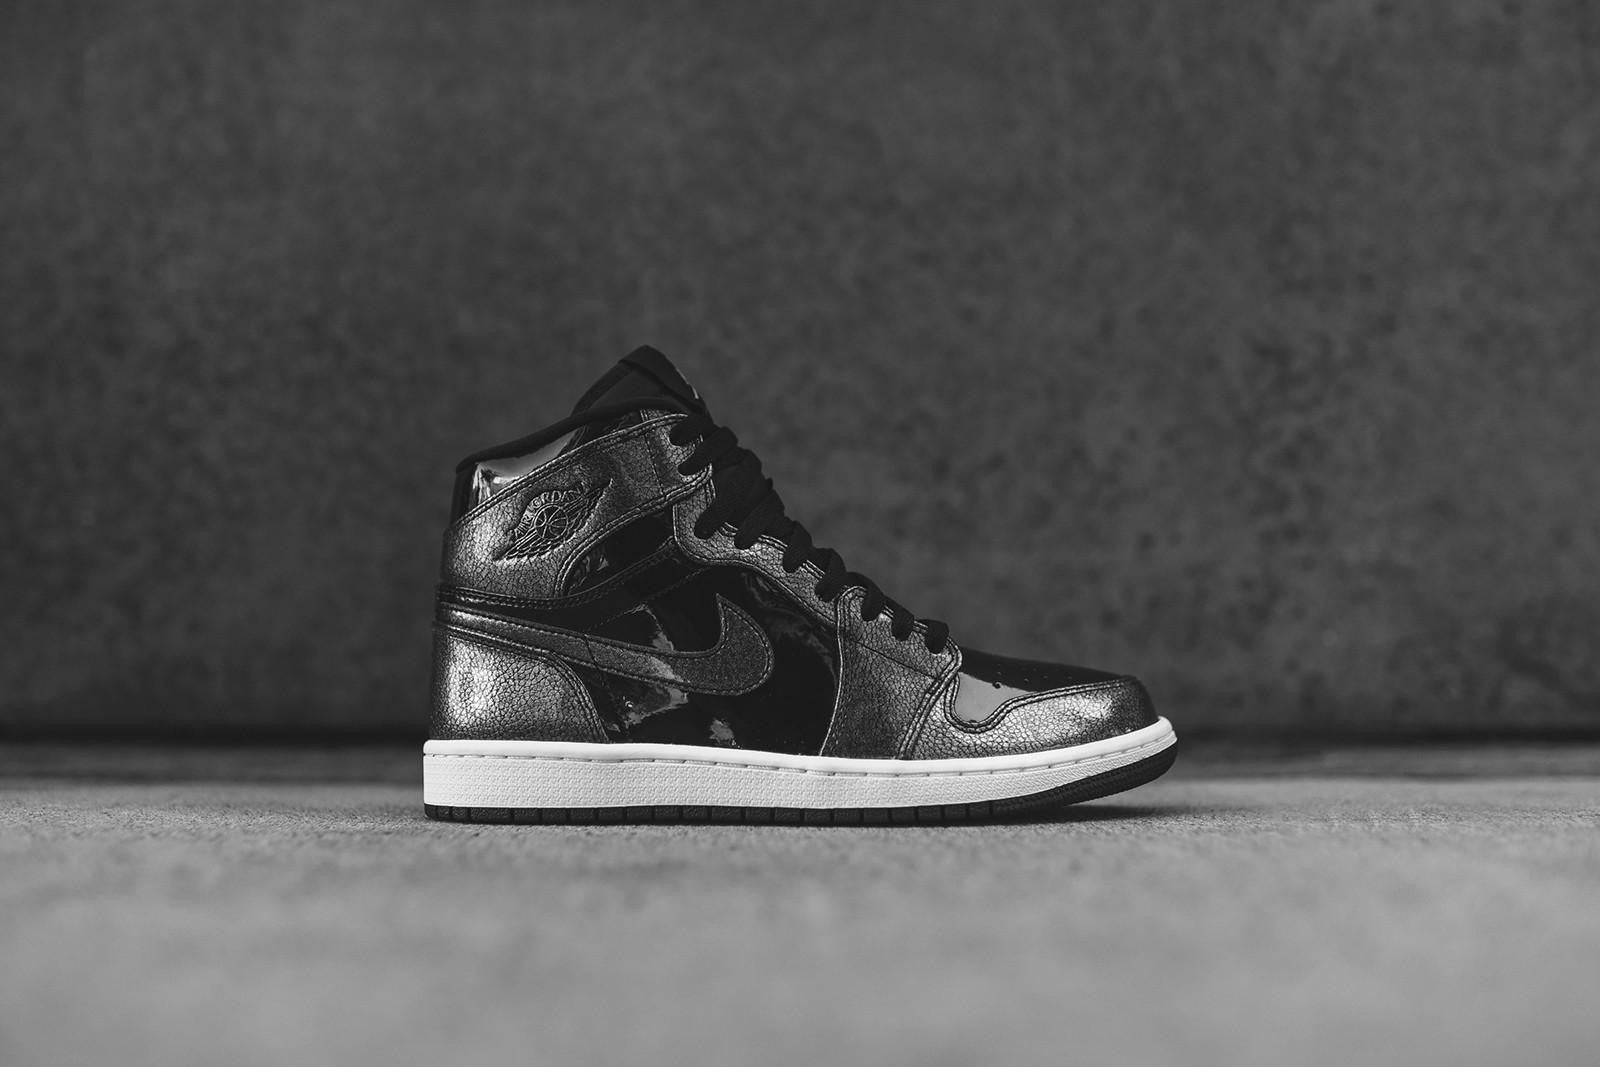 Nike Air Jordan 1 Retro High GS - Black / White